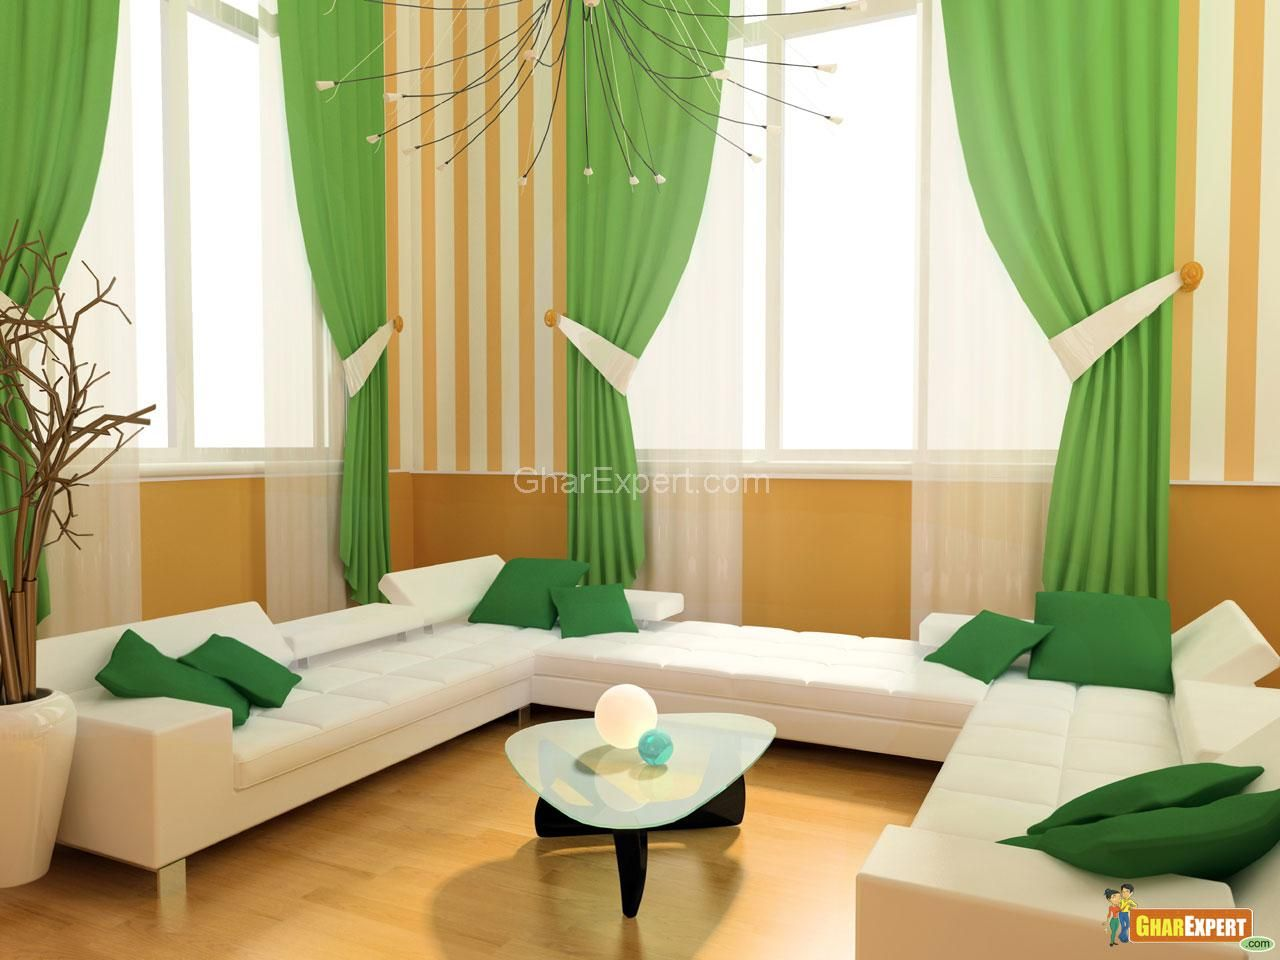 how to choose living room curtain ideas living room design living room curtains ideas - Curtain Design Ideas For Living Room